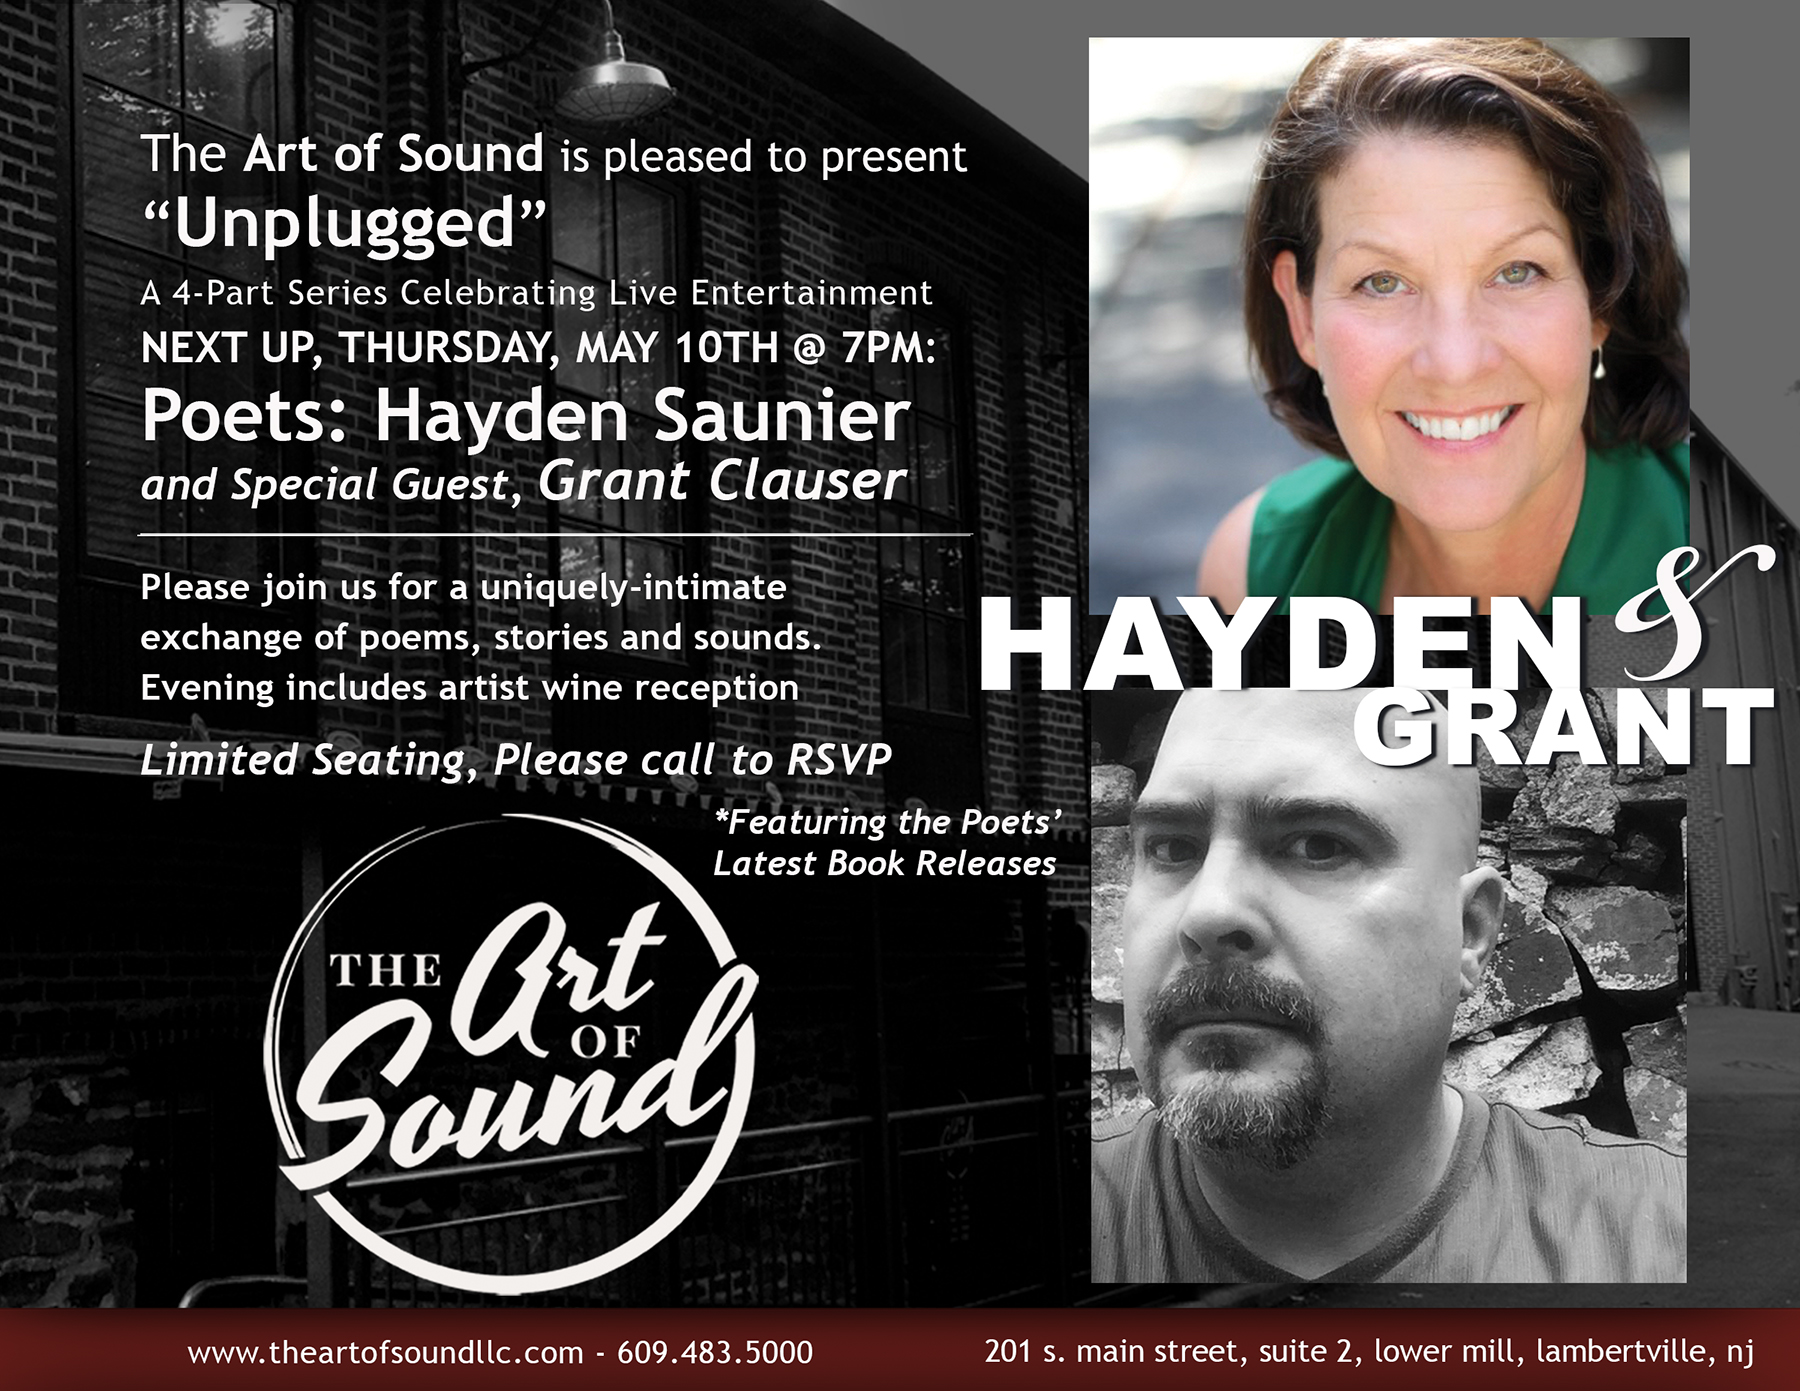 Don't miss the next performance, featuring Poetry Readings by Hayden & Grant, May 10th!